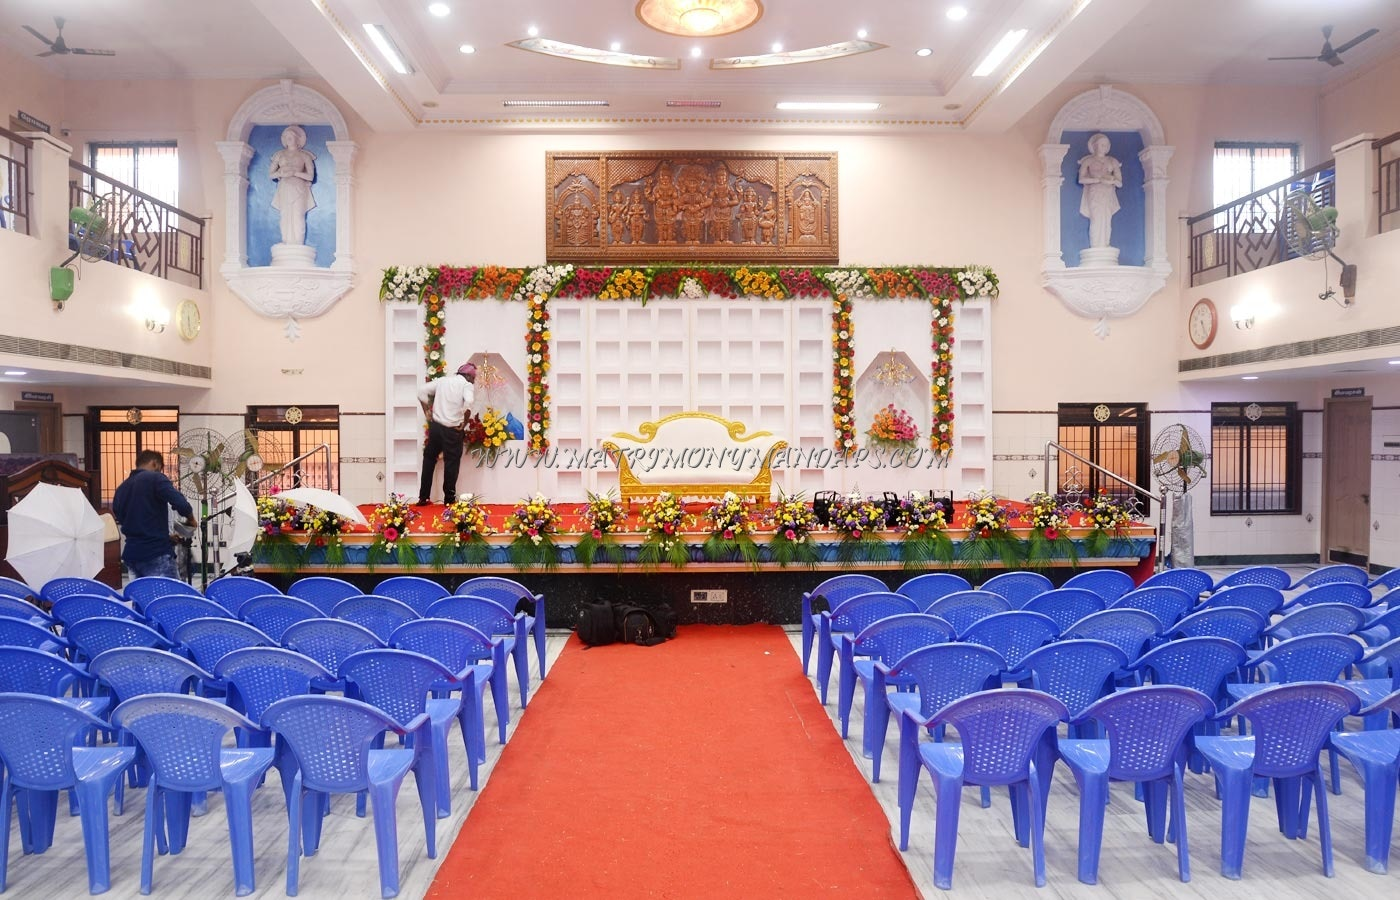 Find the availability of the Sri Lakshmi Mahal  (A/C) in Adambakkam, Chennai and avail special offers